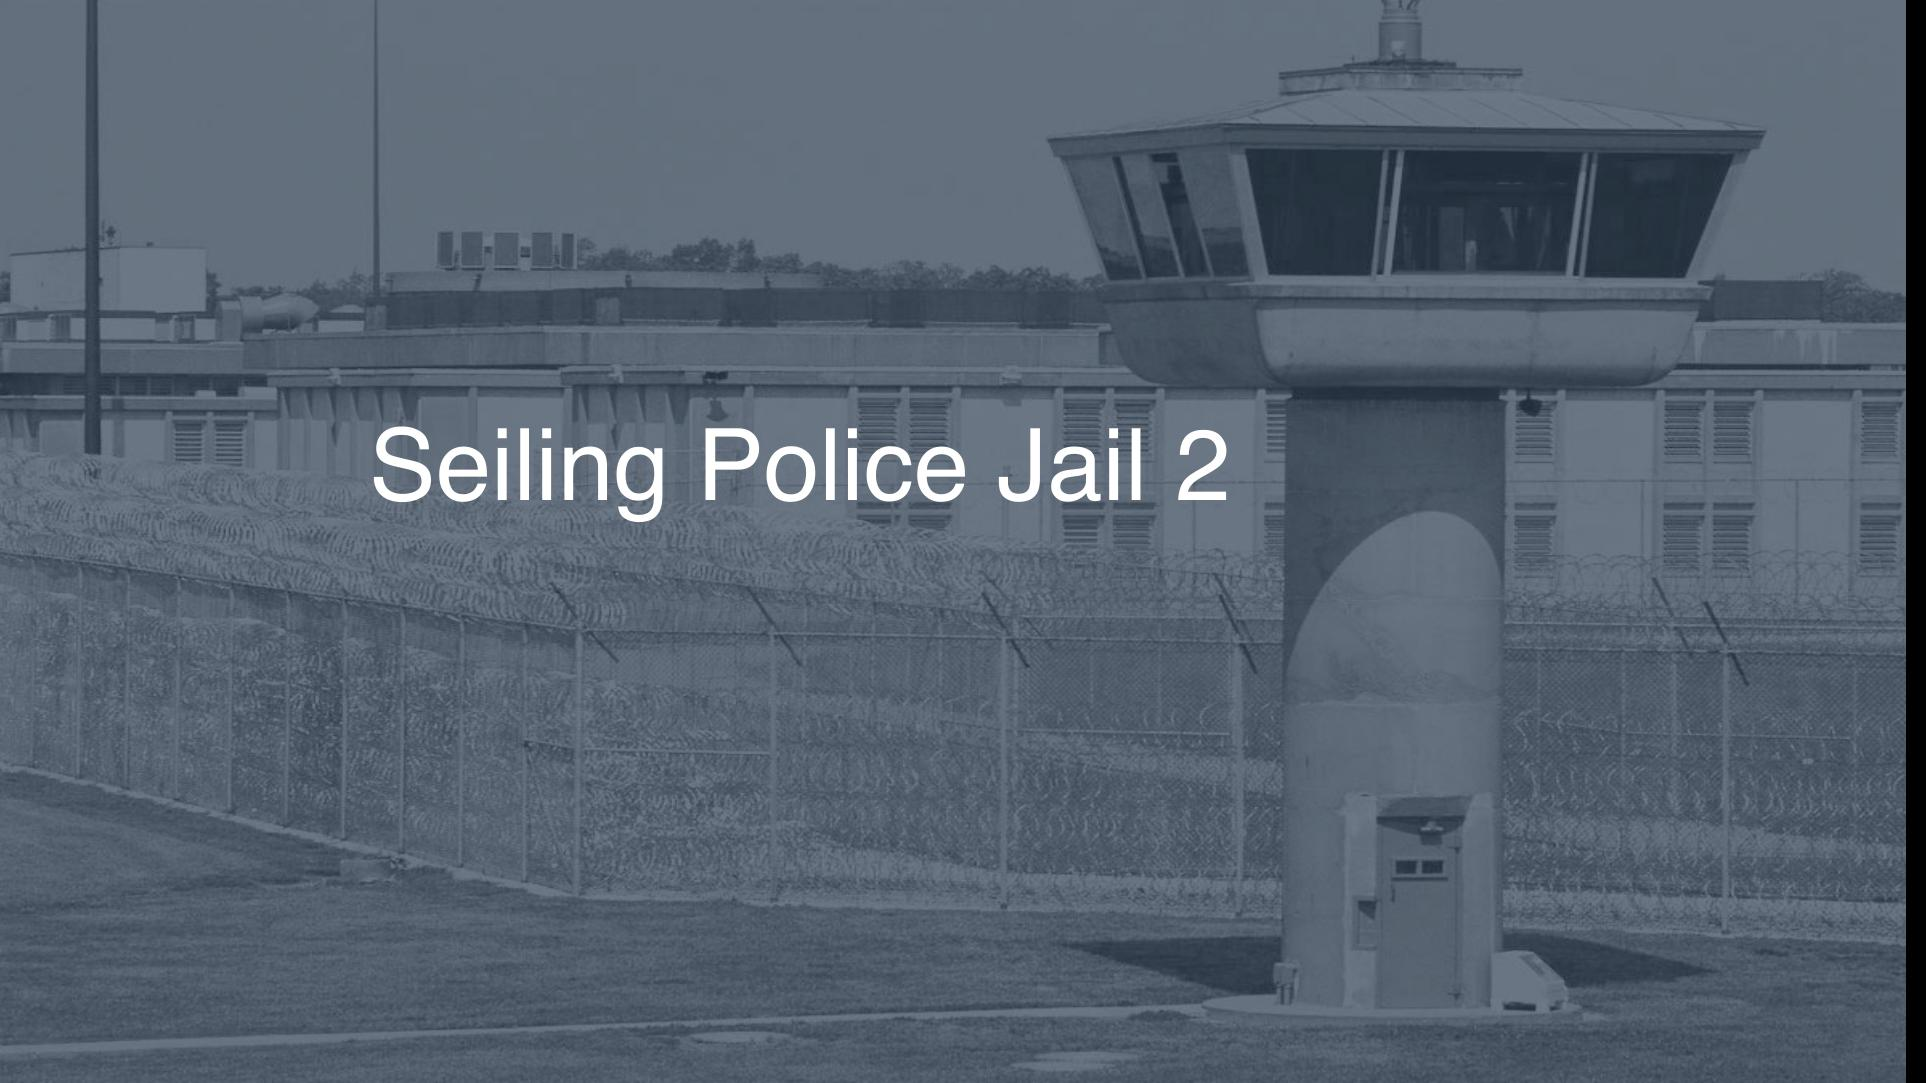 Seiling Police Jail correctional facility picture